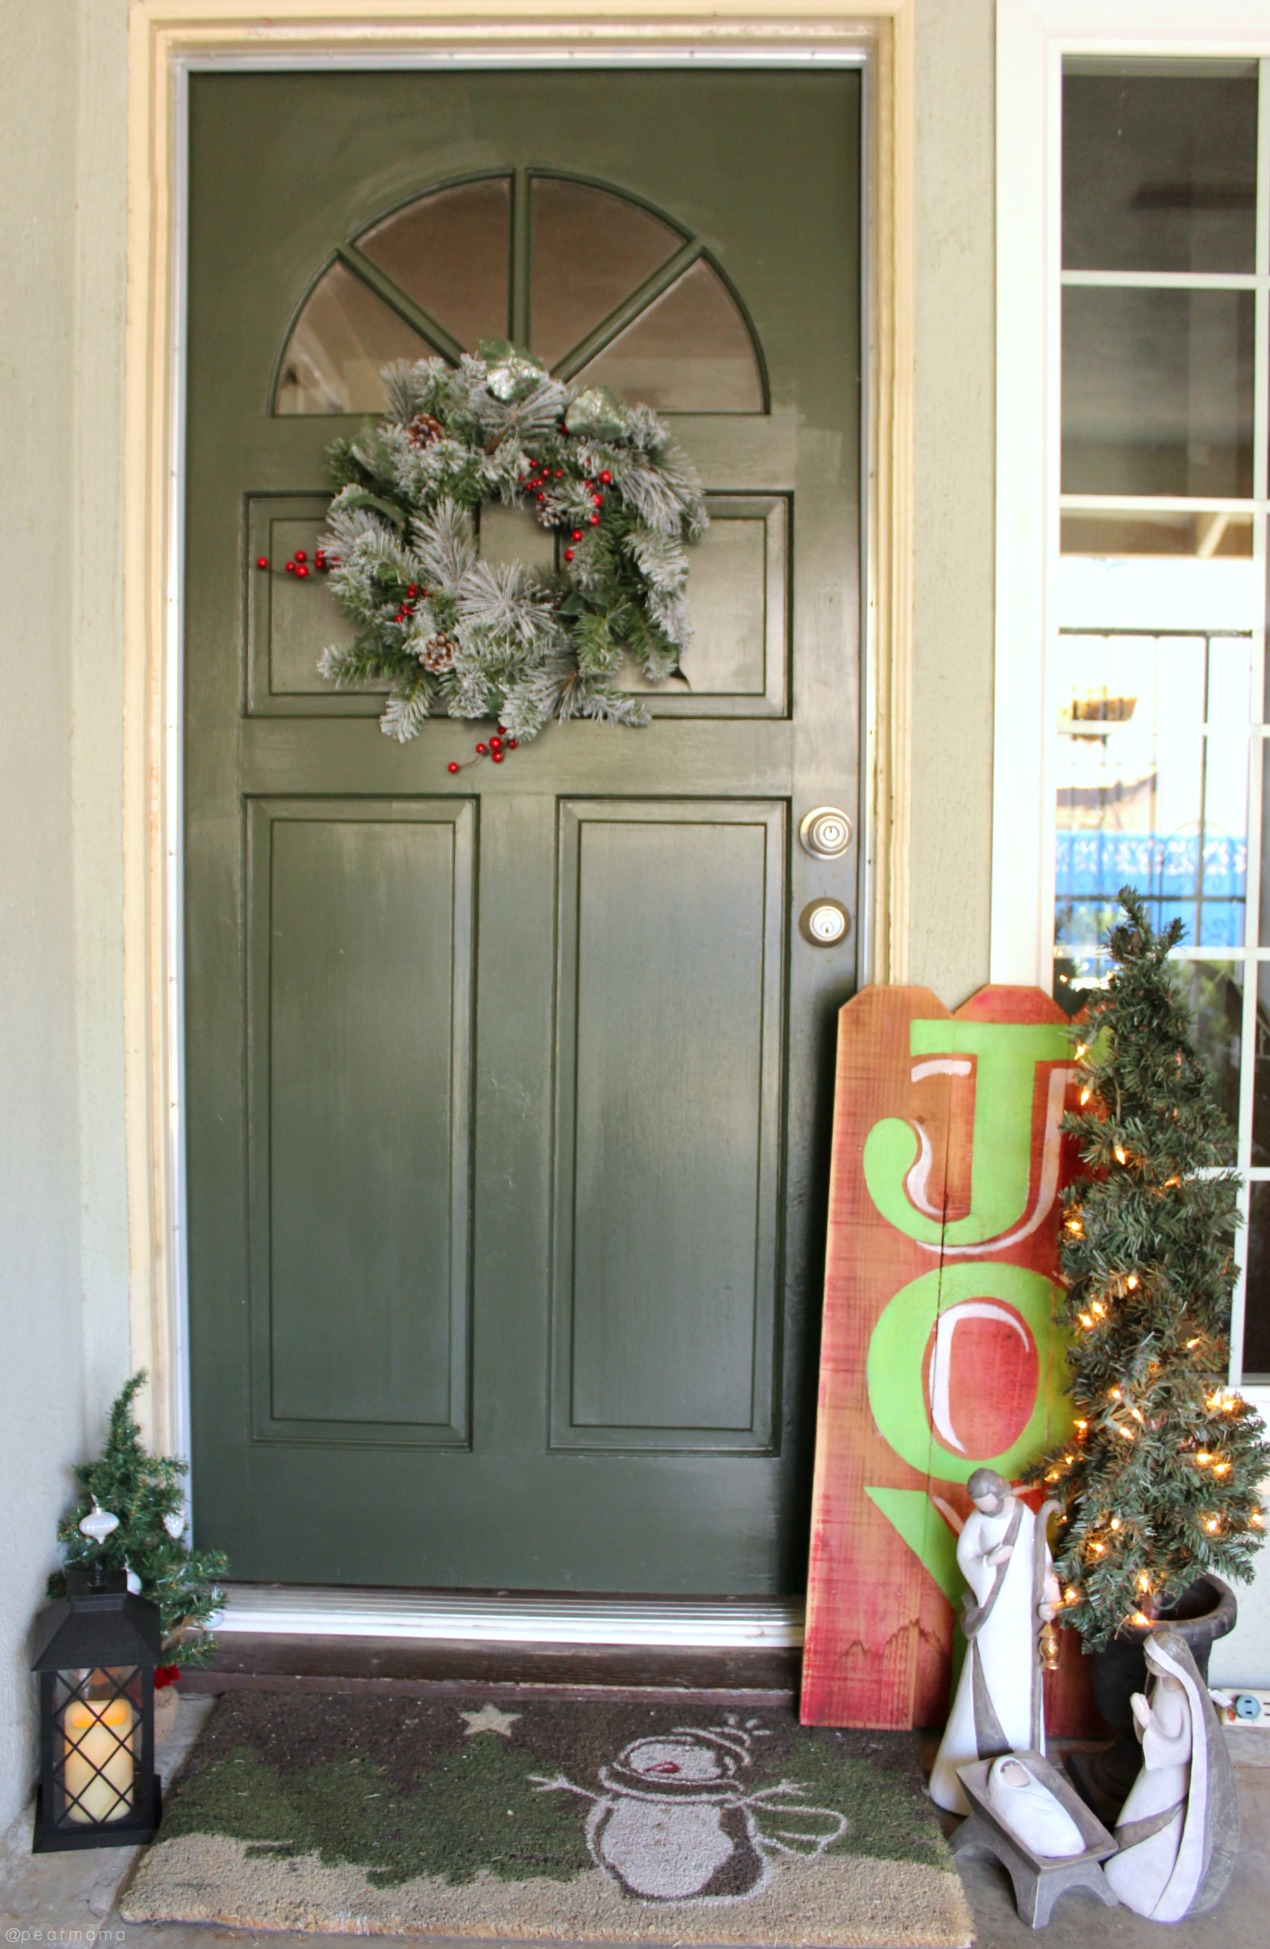 diy-holiday-front-door